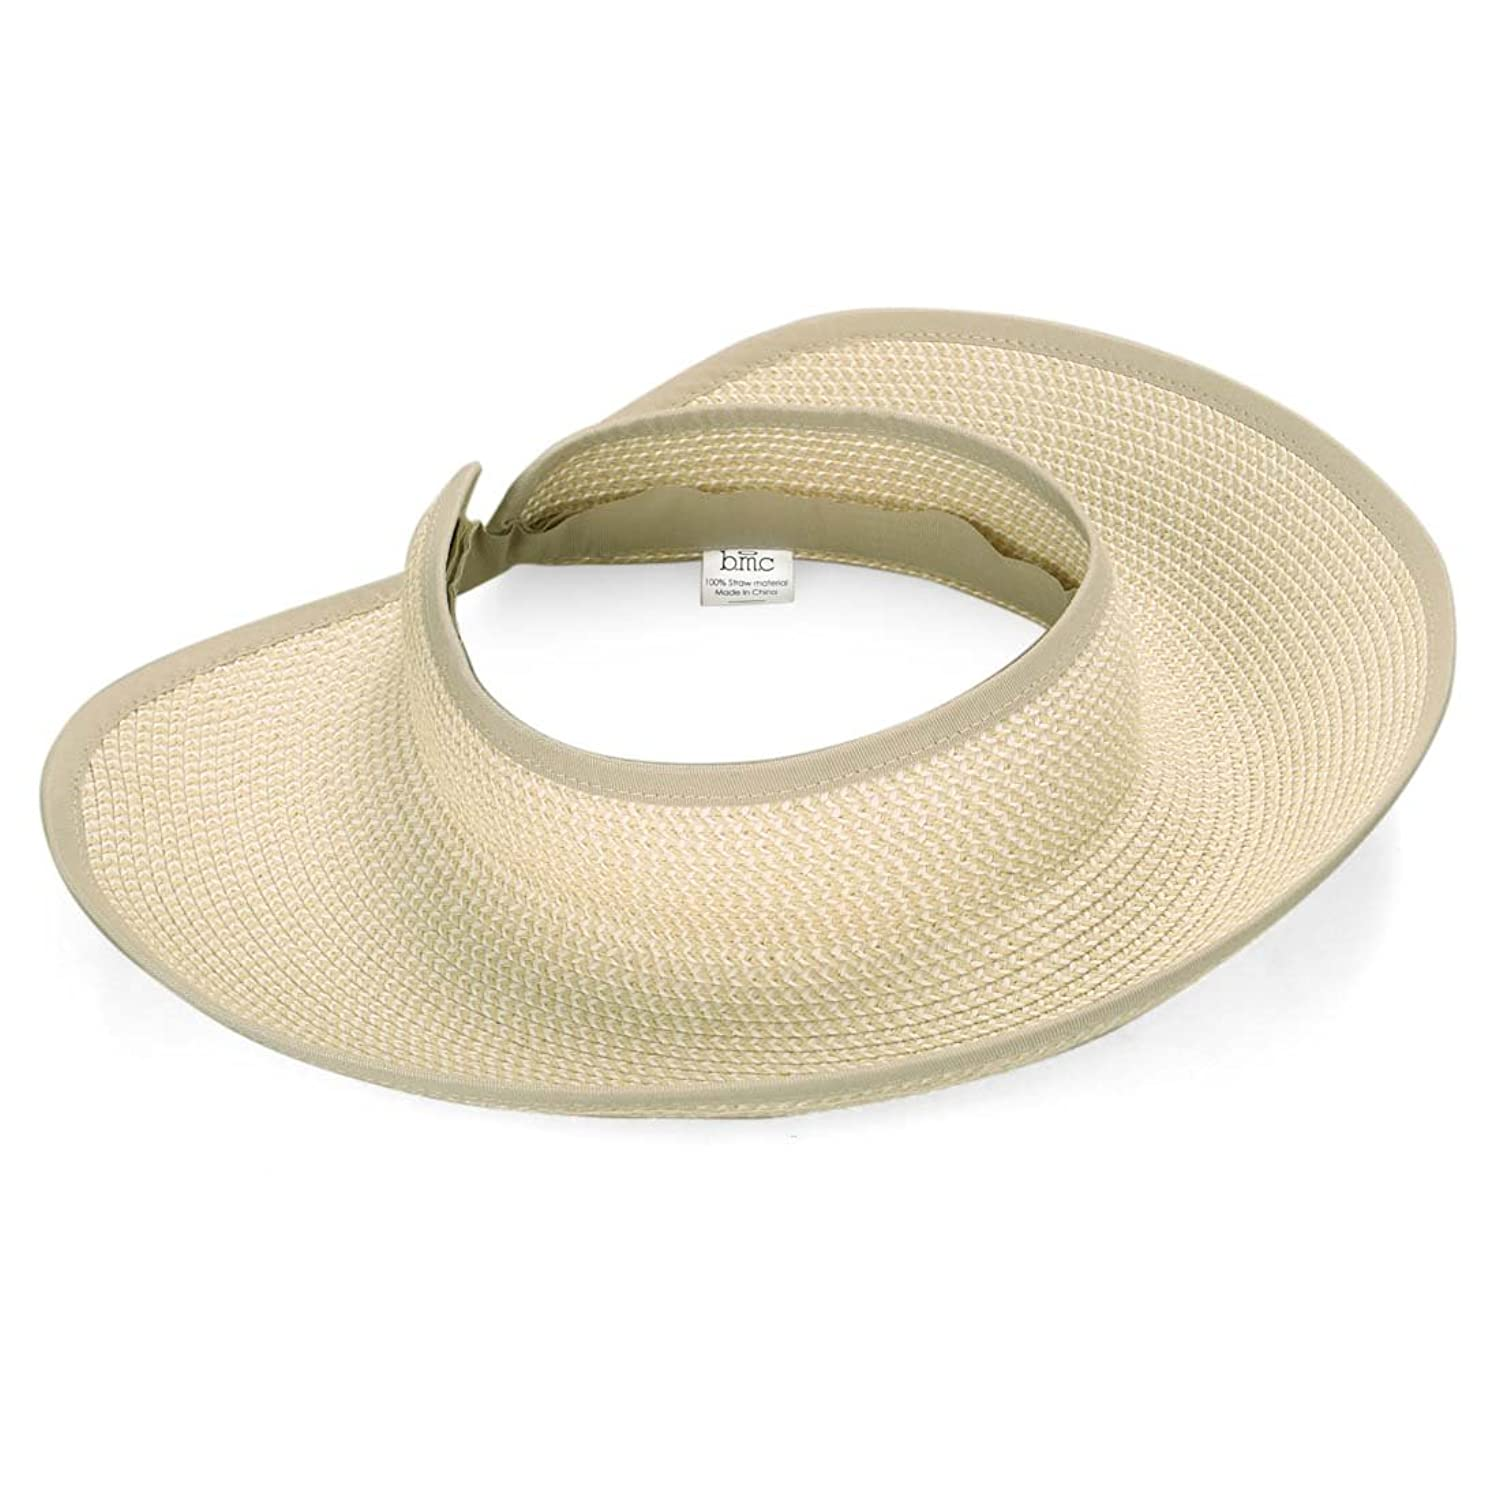 d1aec2657ced8 BMC 2pc Roll Up Collapsible Wide Brim and Visor Style Straw Hats  Black +  Beige at Amazon Women s Clothing store